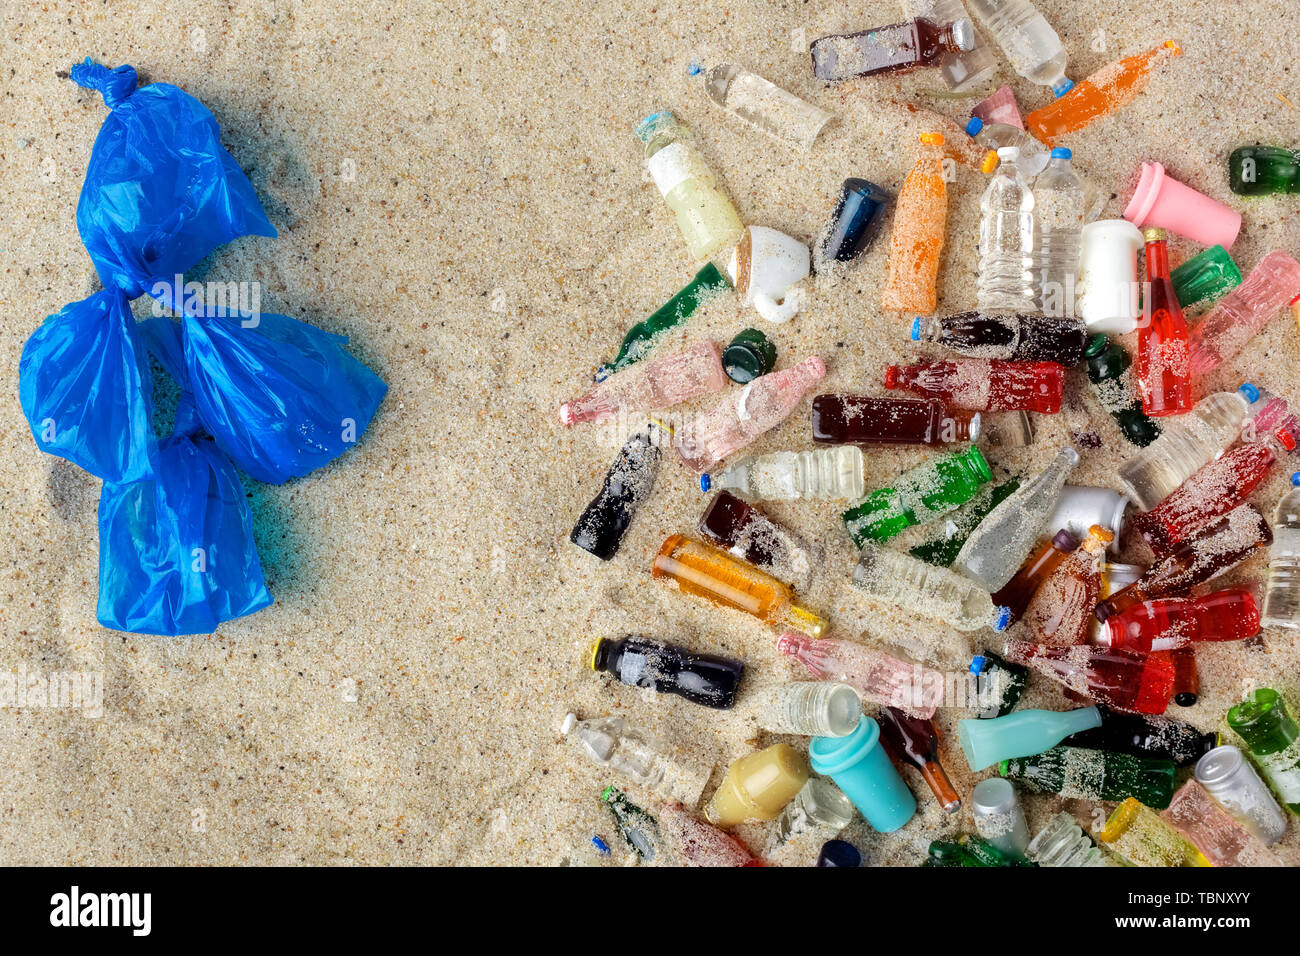 garbage collected on the beach.Top view - Stock Image